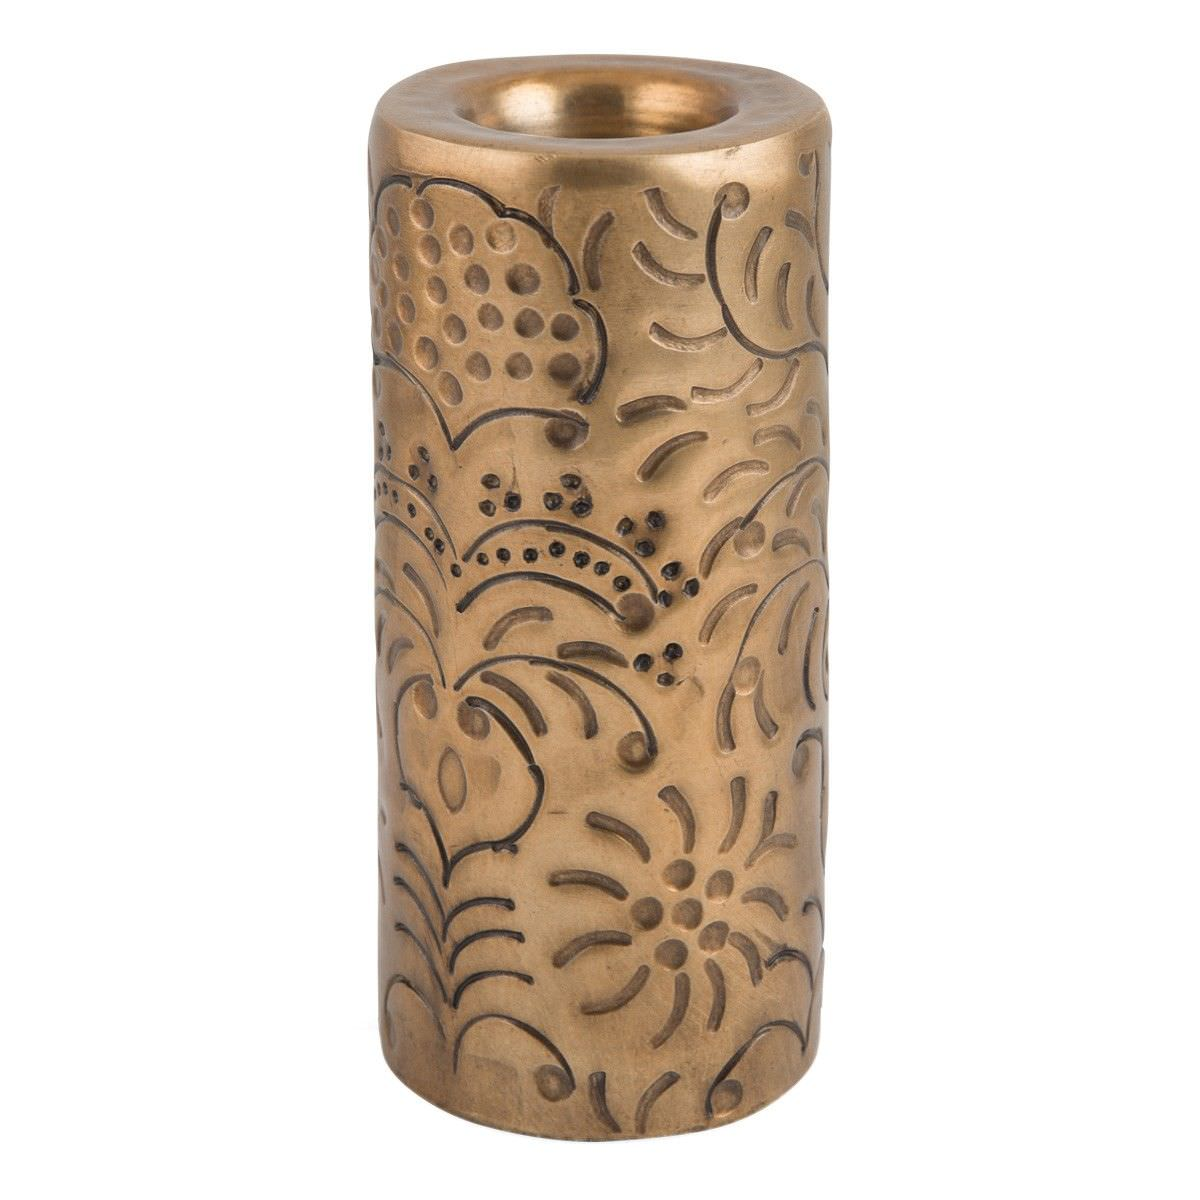 Mireille French Embossed Aluminium Round Pillar Tealight Holder, Large, Antique Gold